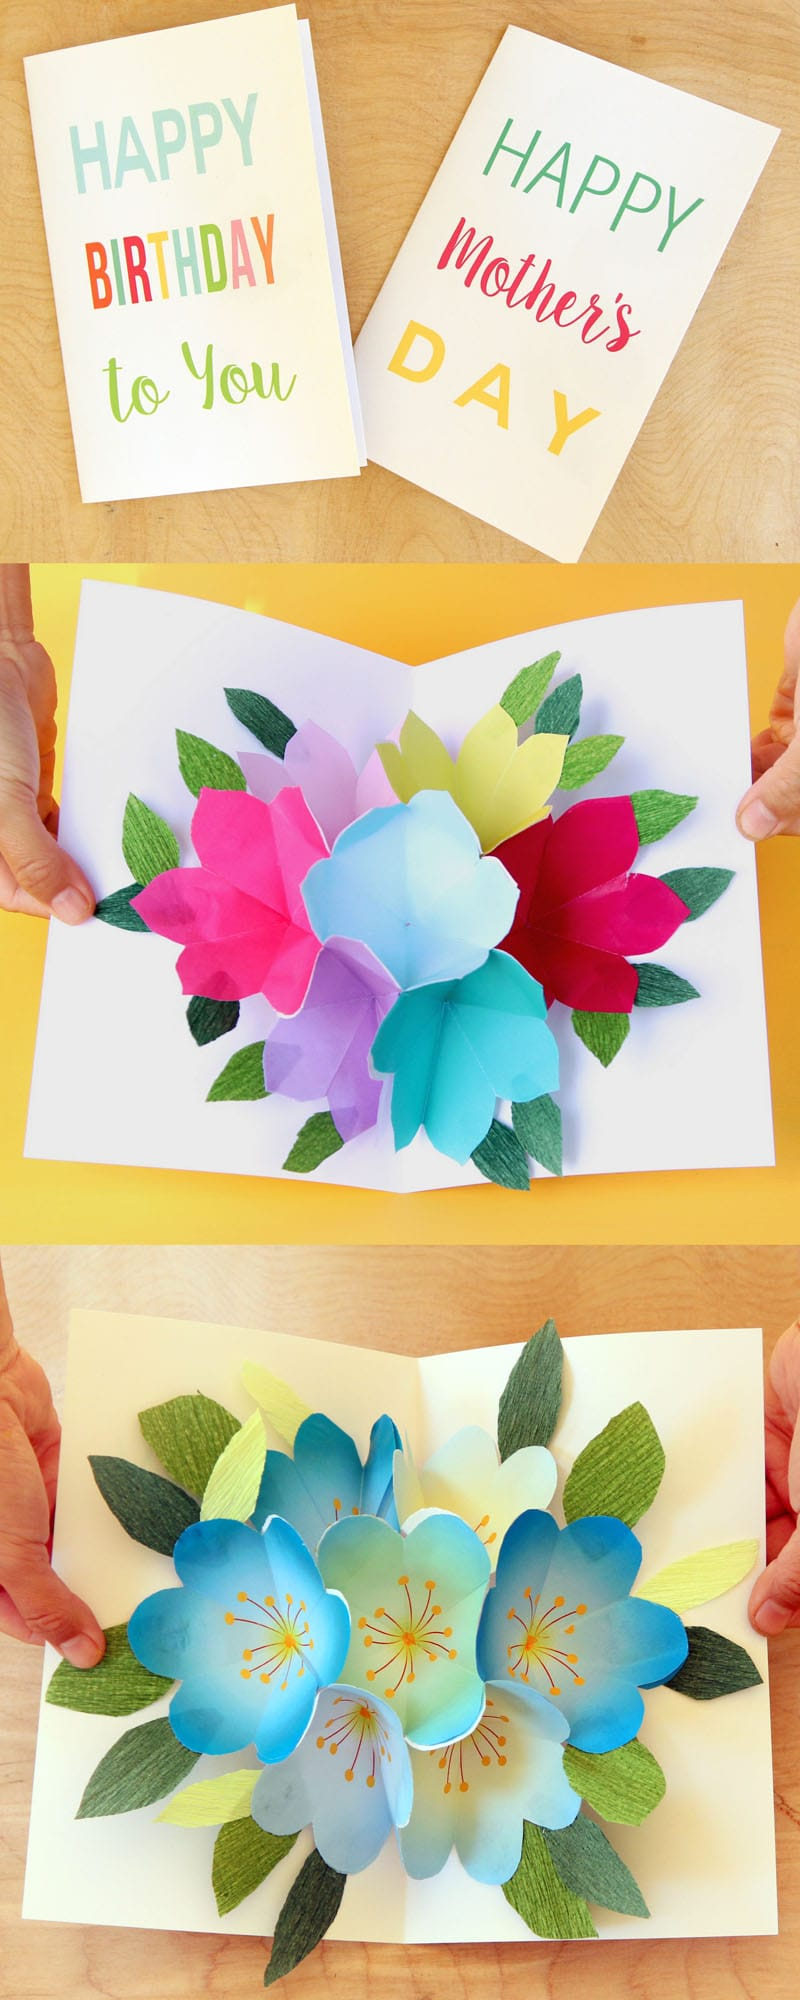 Free printable happy birthday card with pop up bouquet a piece of you can make this easy and free printable birthday card in less than an hour oh and the best part a big bouquet pops right out when your loved one opens kristyandbryce Gallery